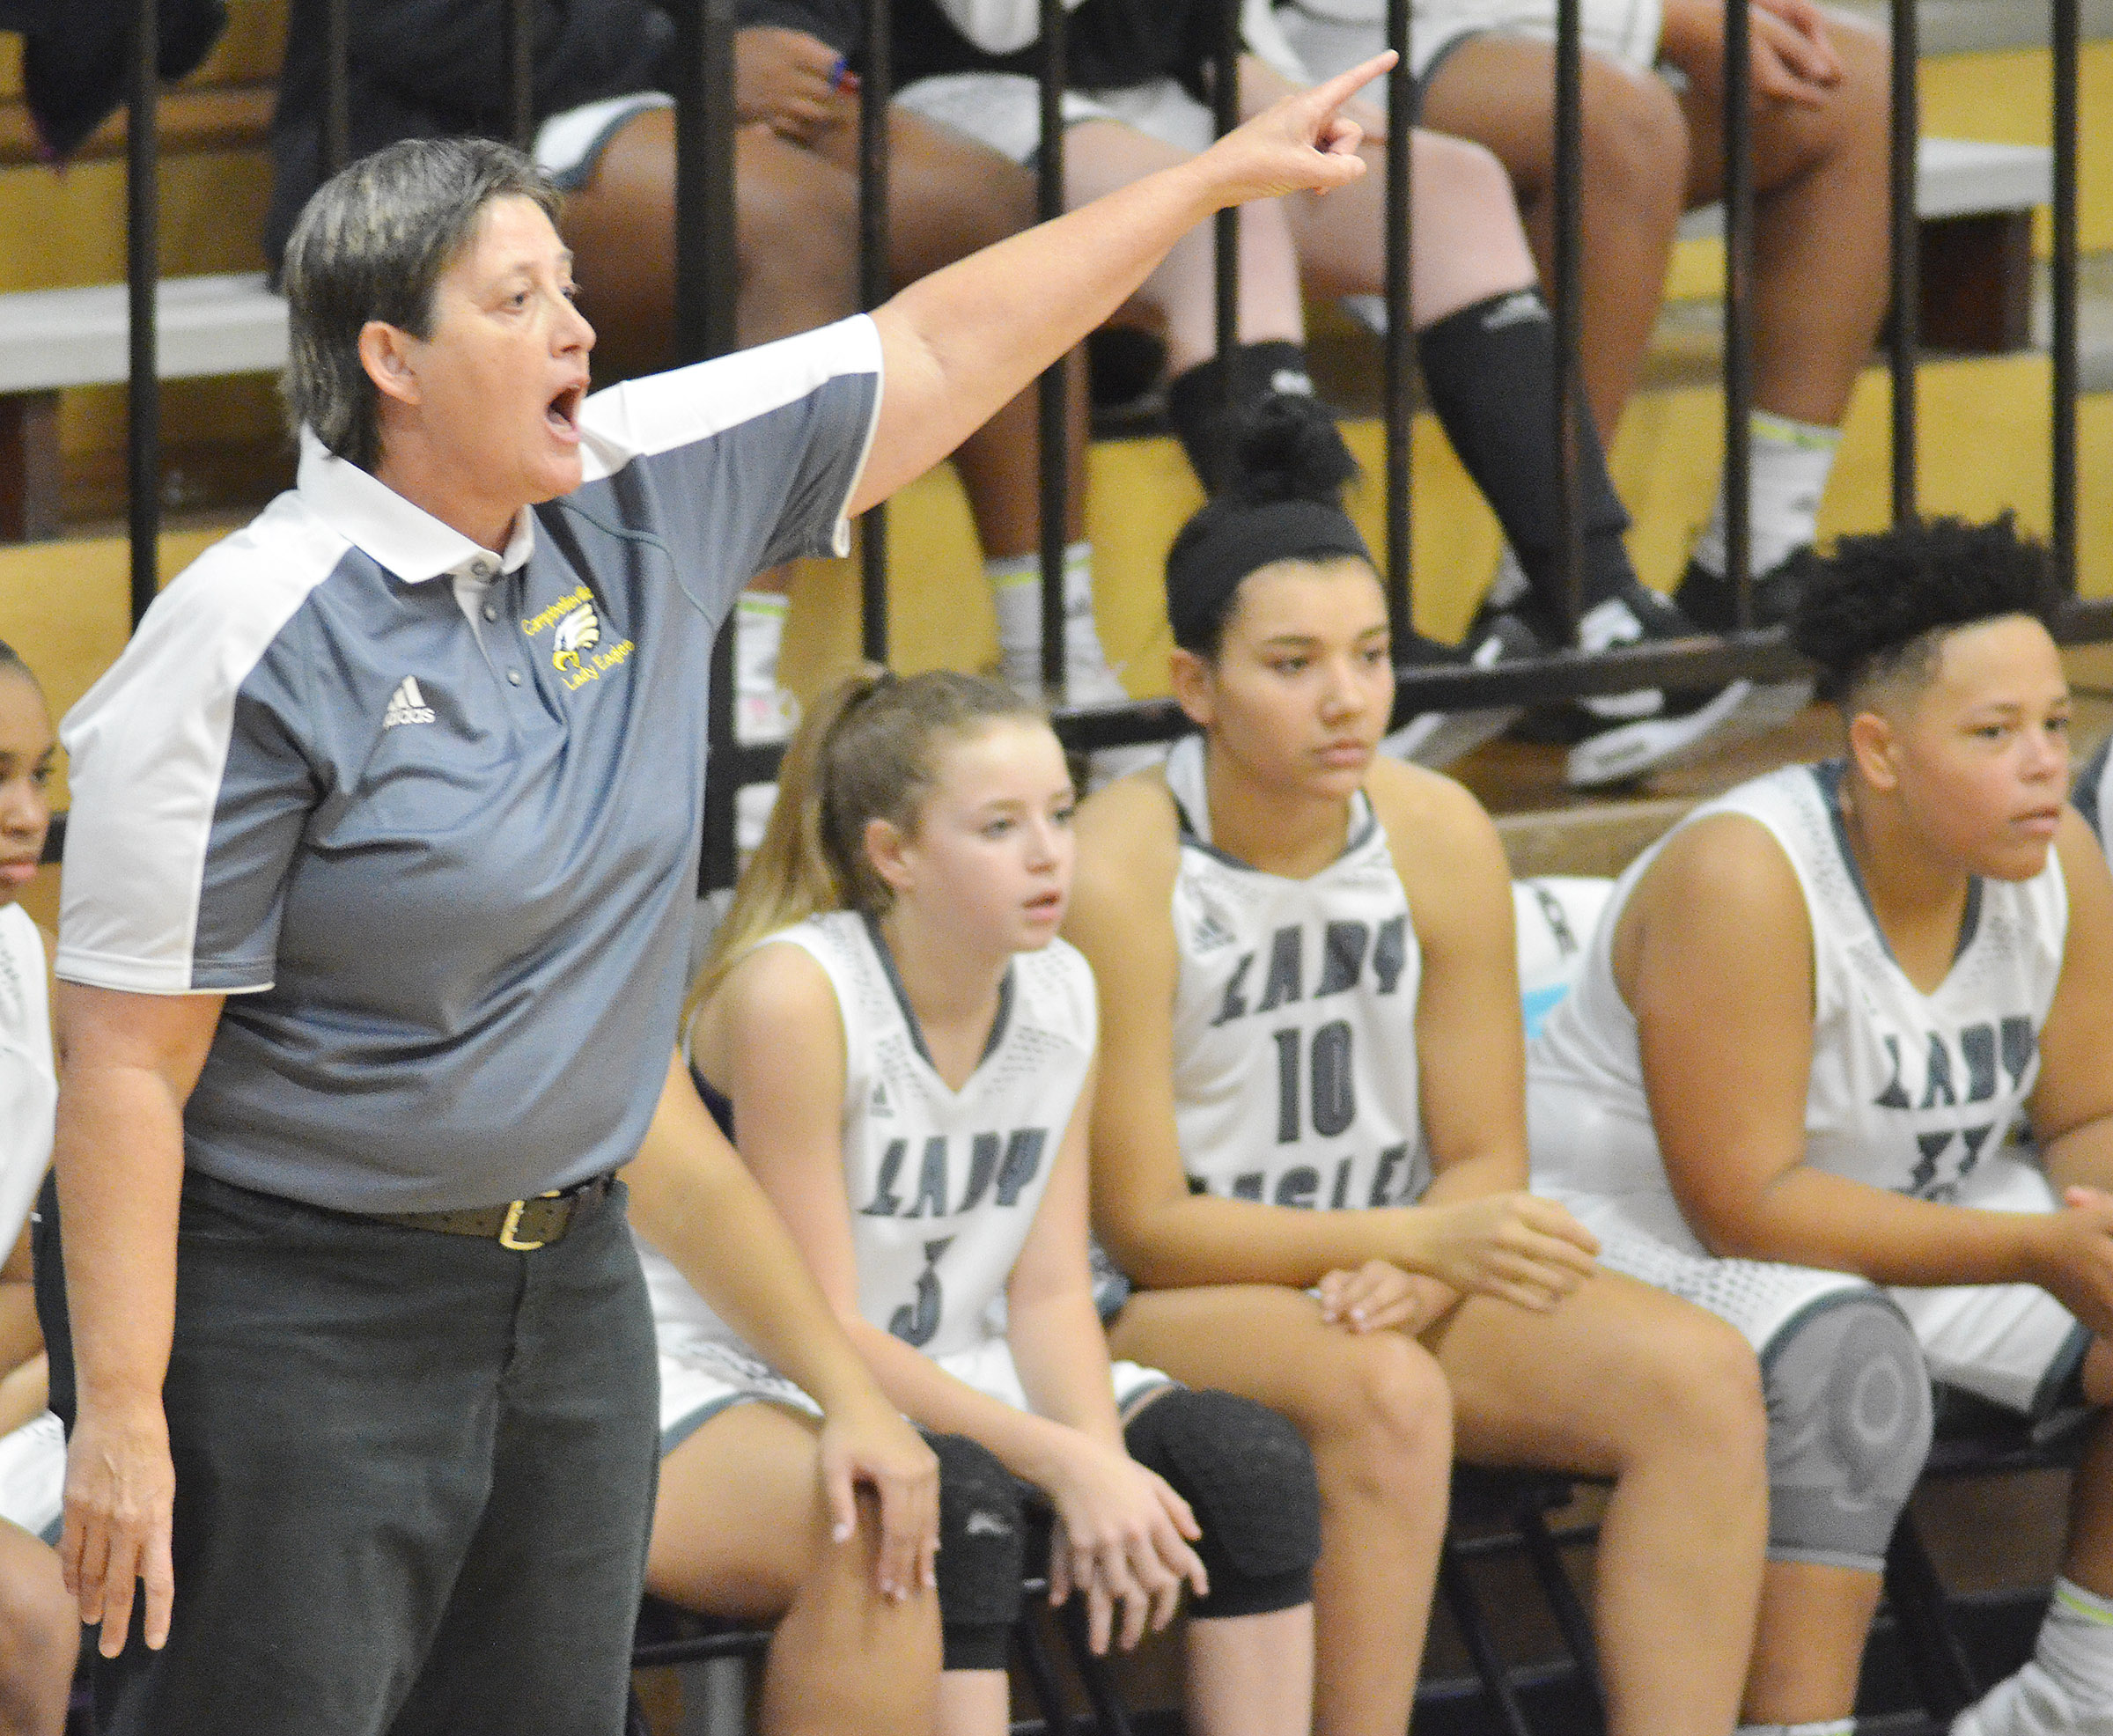 CHS girls' basketball assistant coach Katie Wilkerson yells to her players.